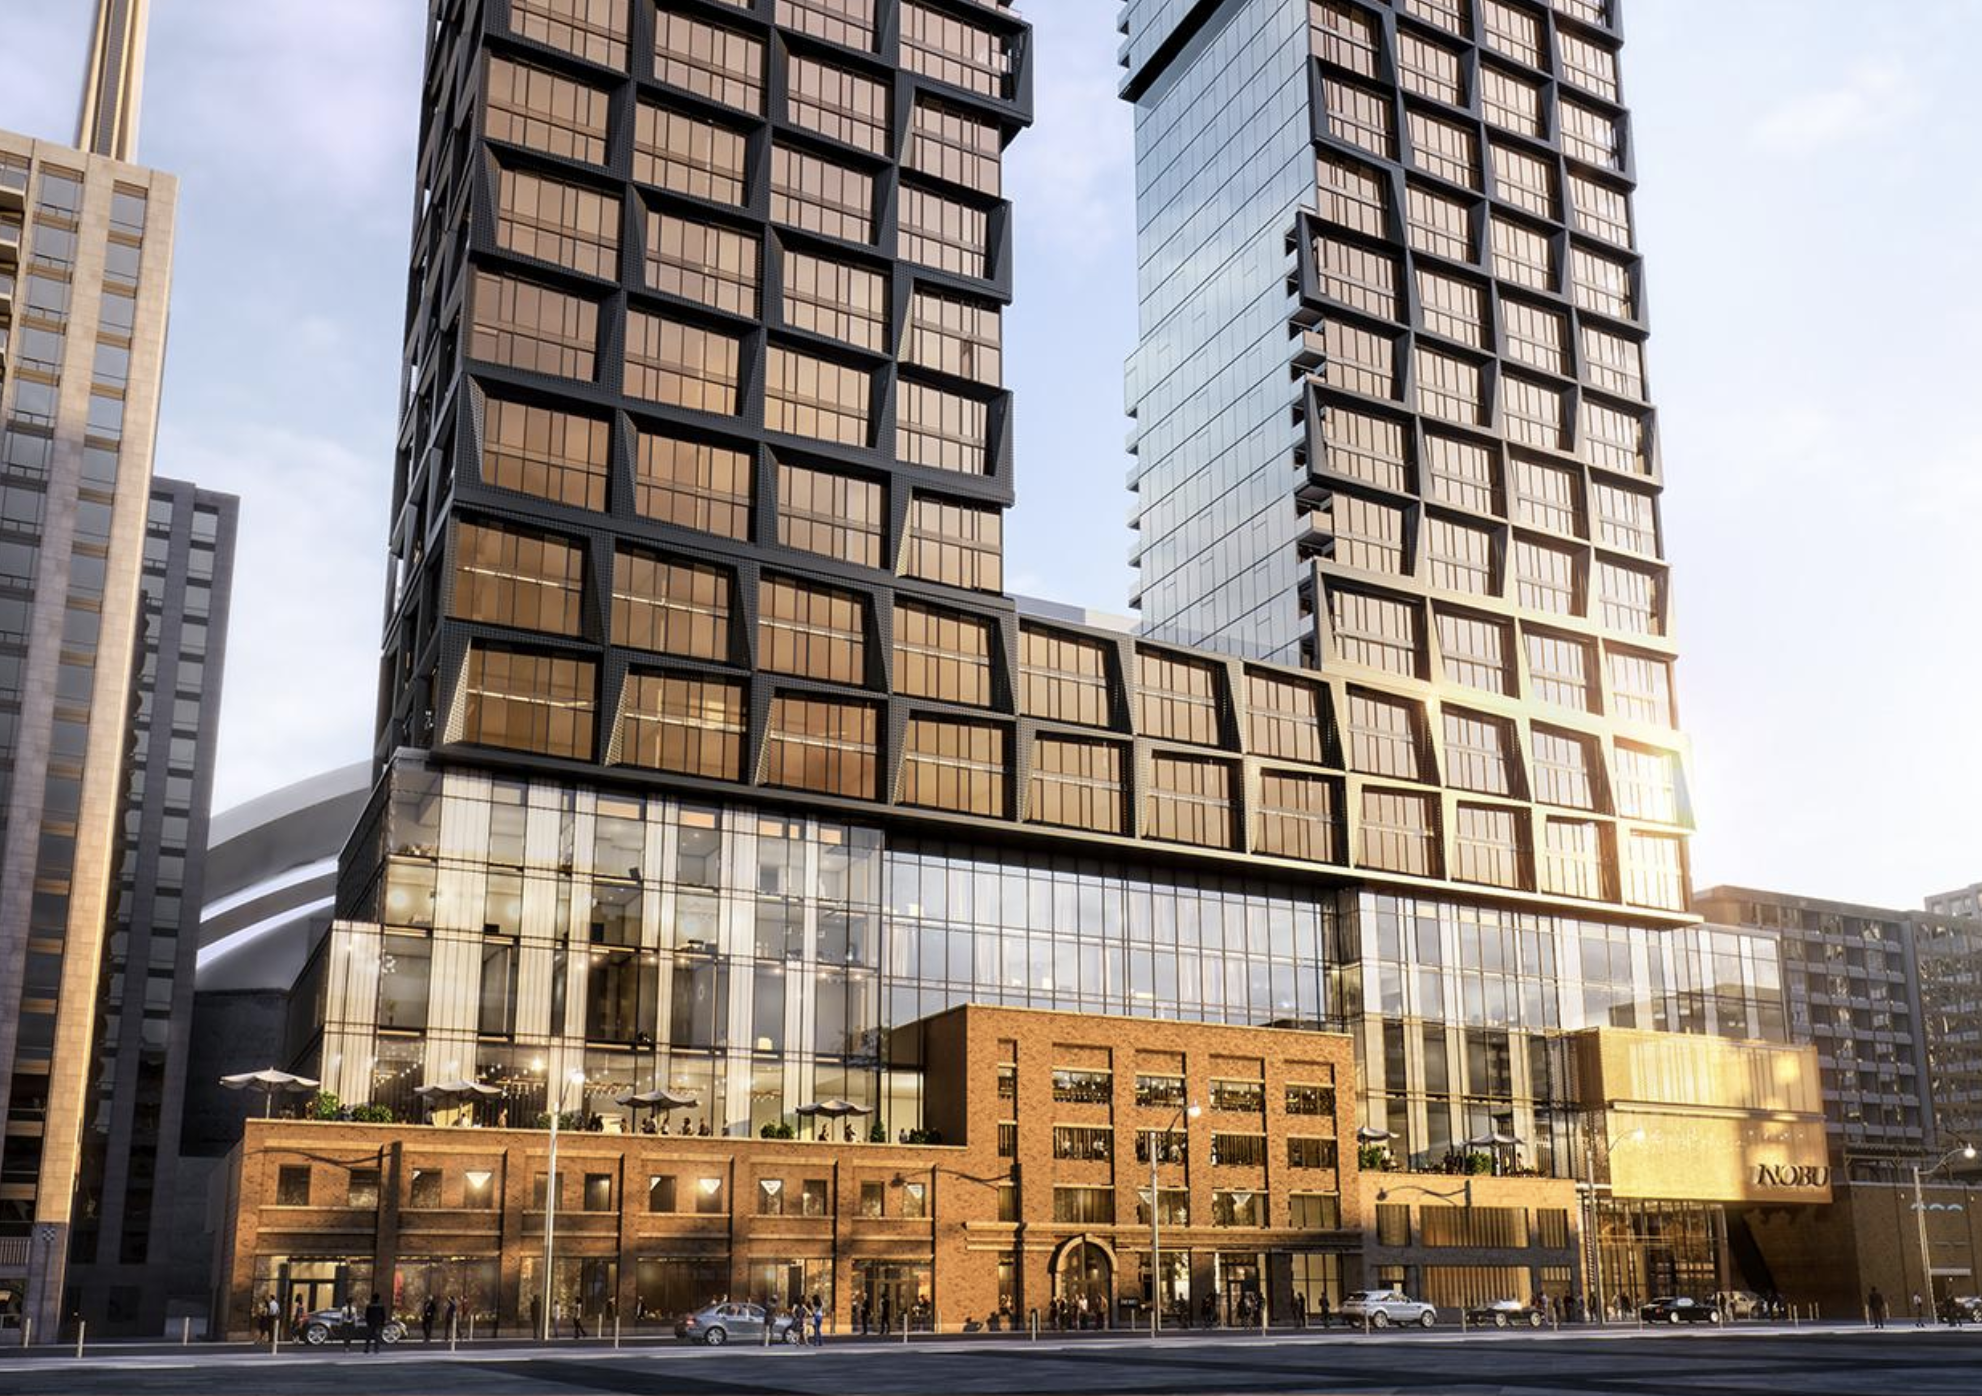 Nobu Residences - King & John • Madison GroupThe world's first Nobu-branded, condominium Residences located in the heart of Toronto's Entertainment District consisting of a U-shaped complex with twin 49-storey towers with 718 mixed condo units.